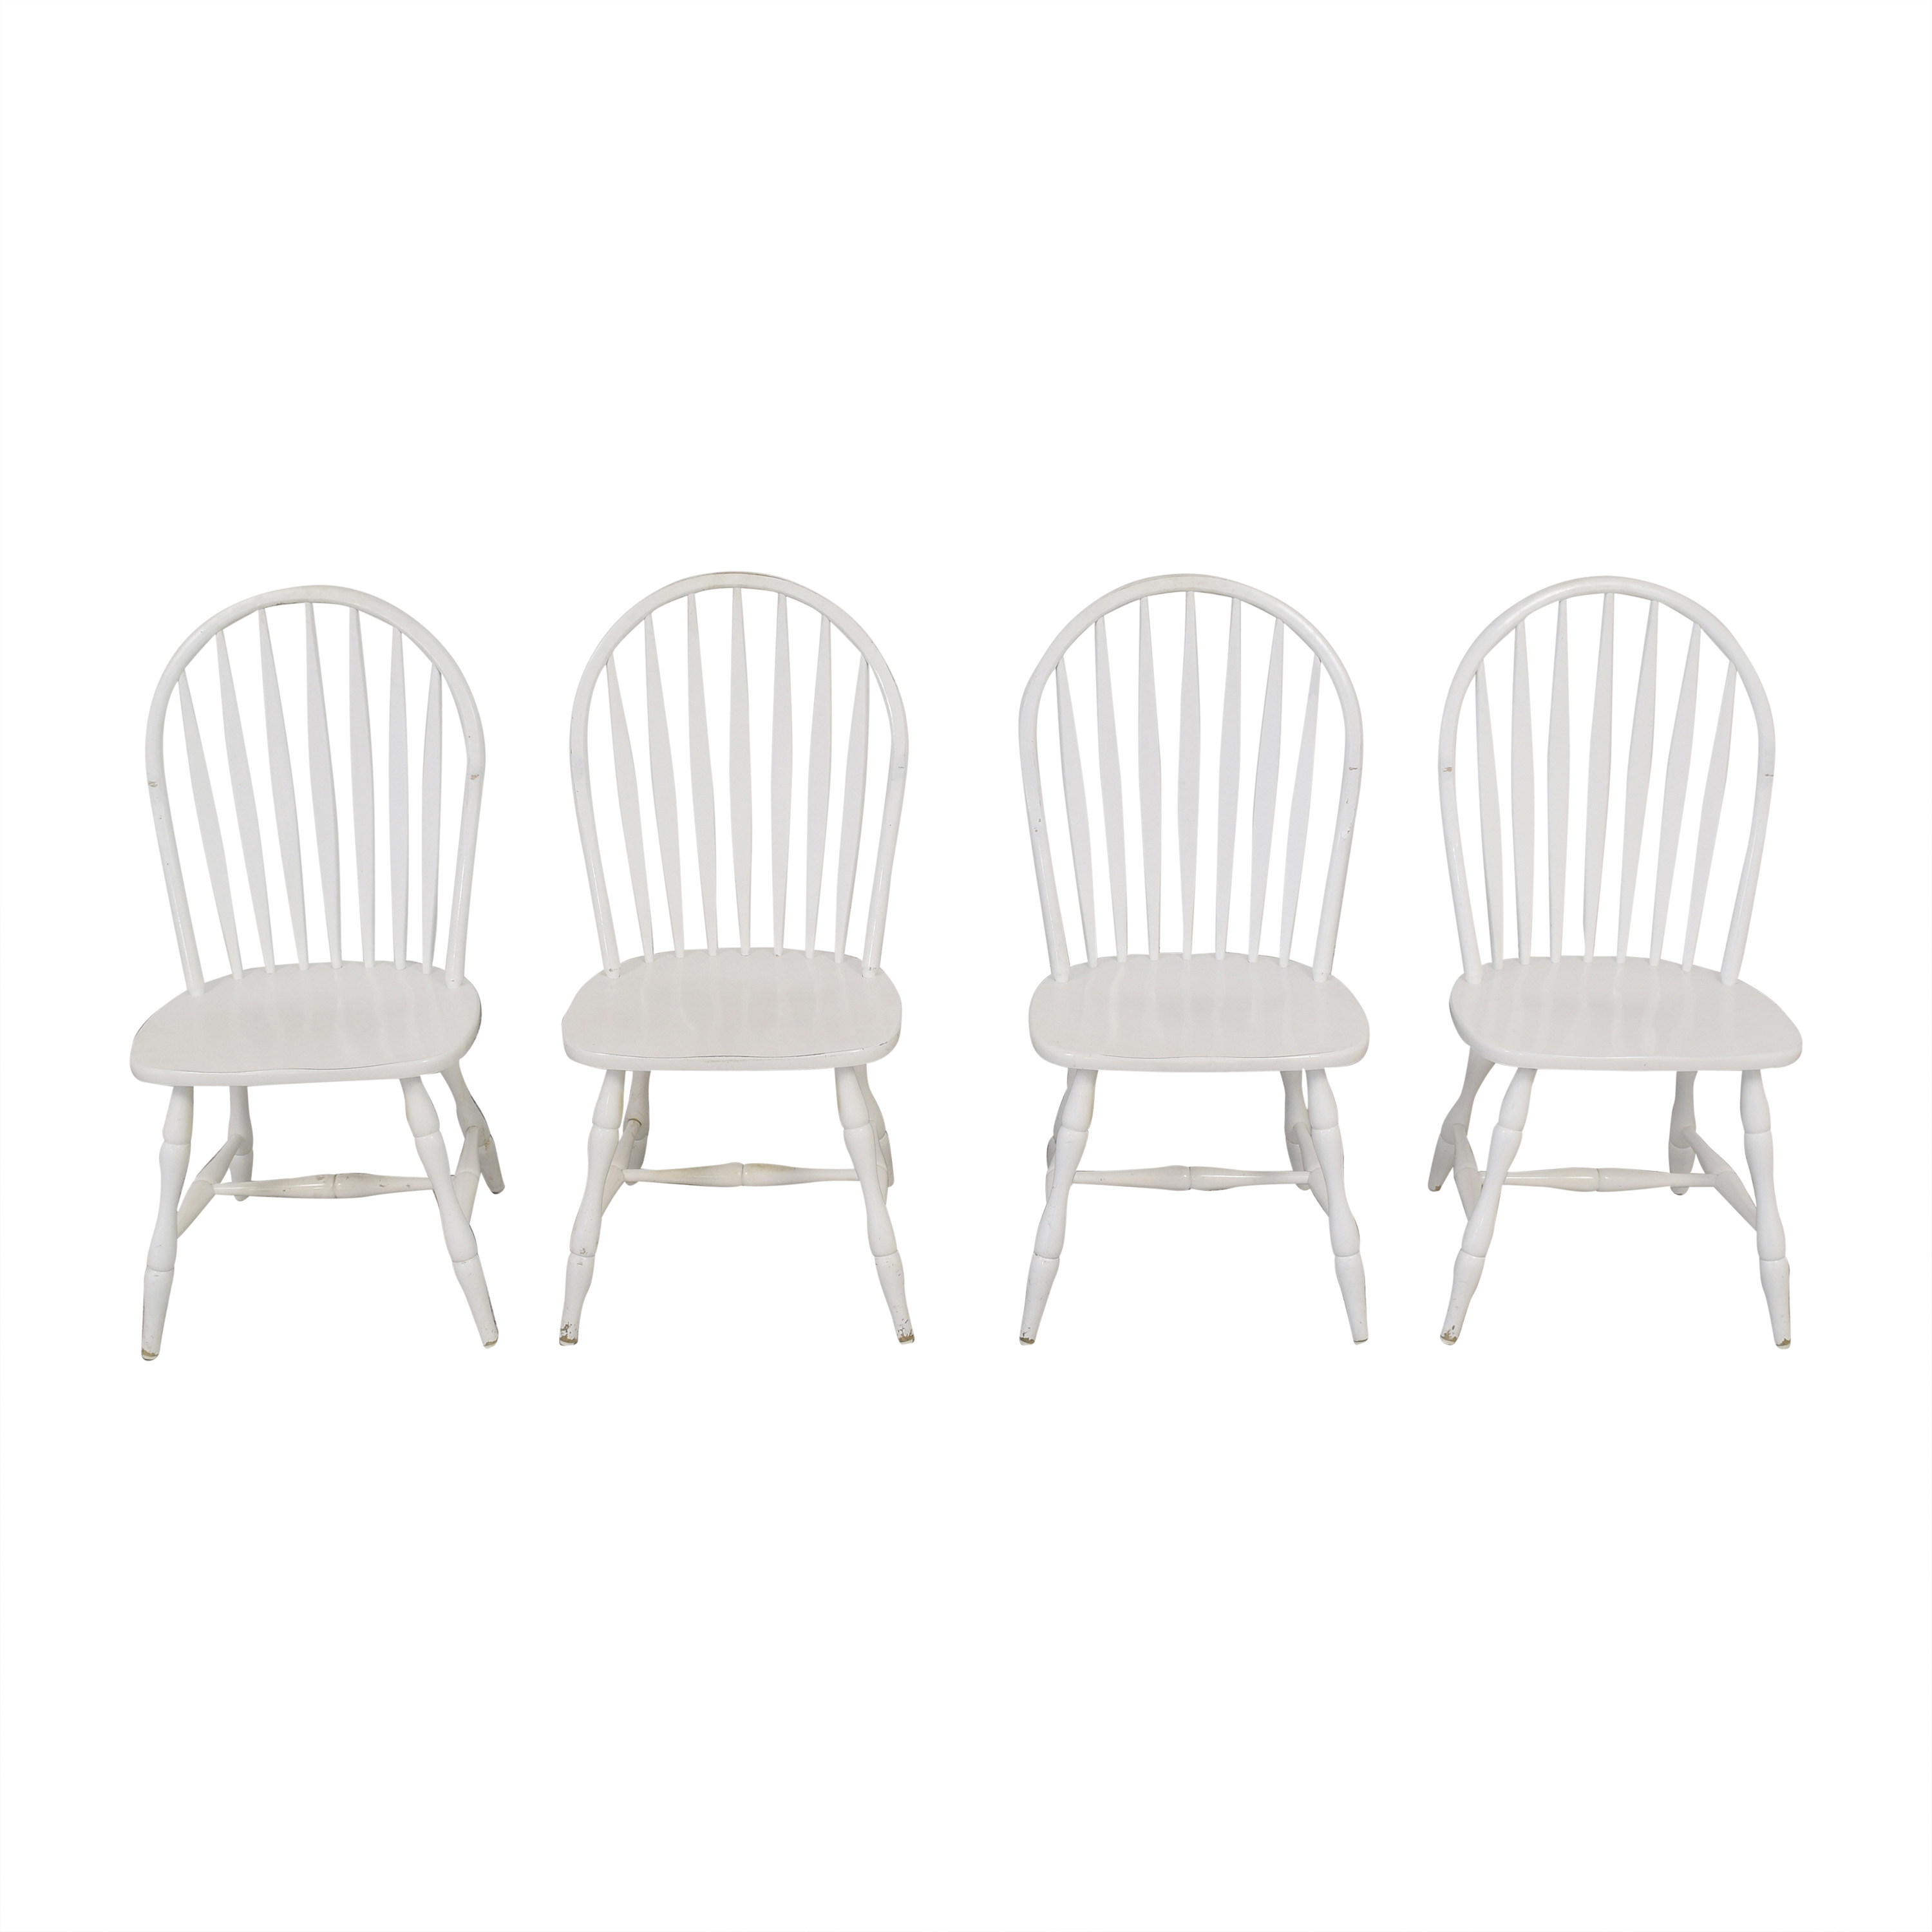 Canadel Canadel Windsor Dining Chairs nyc